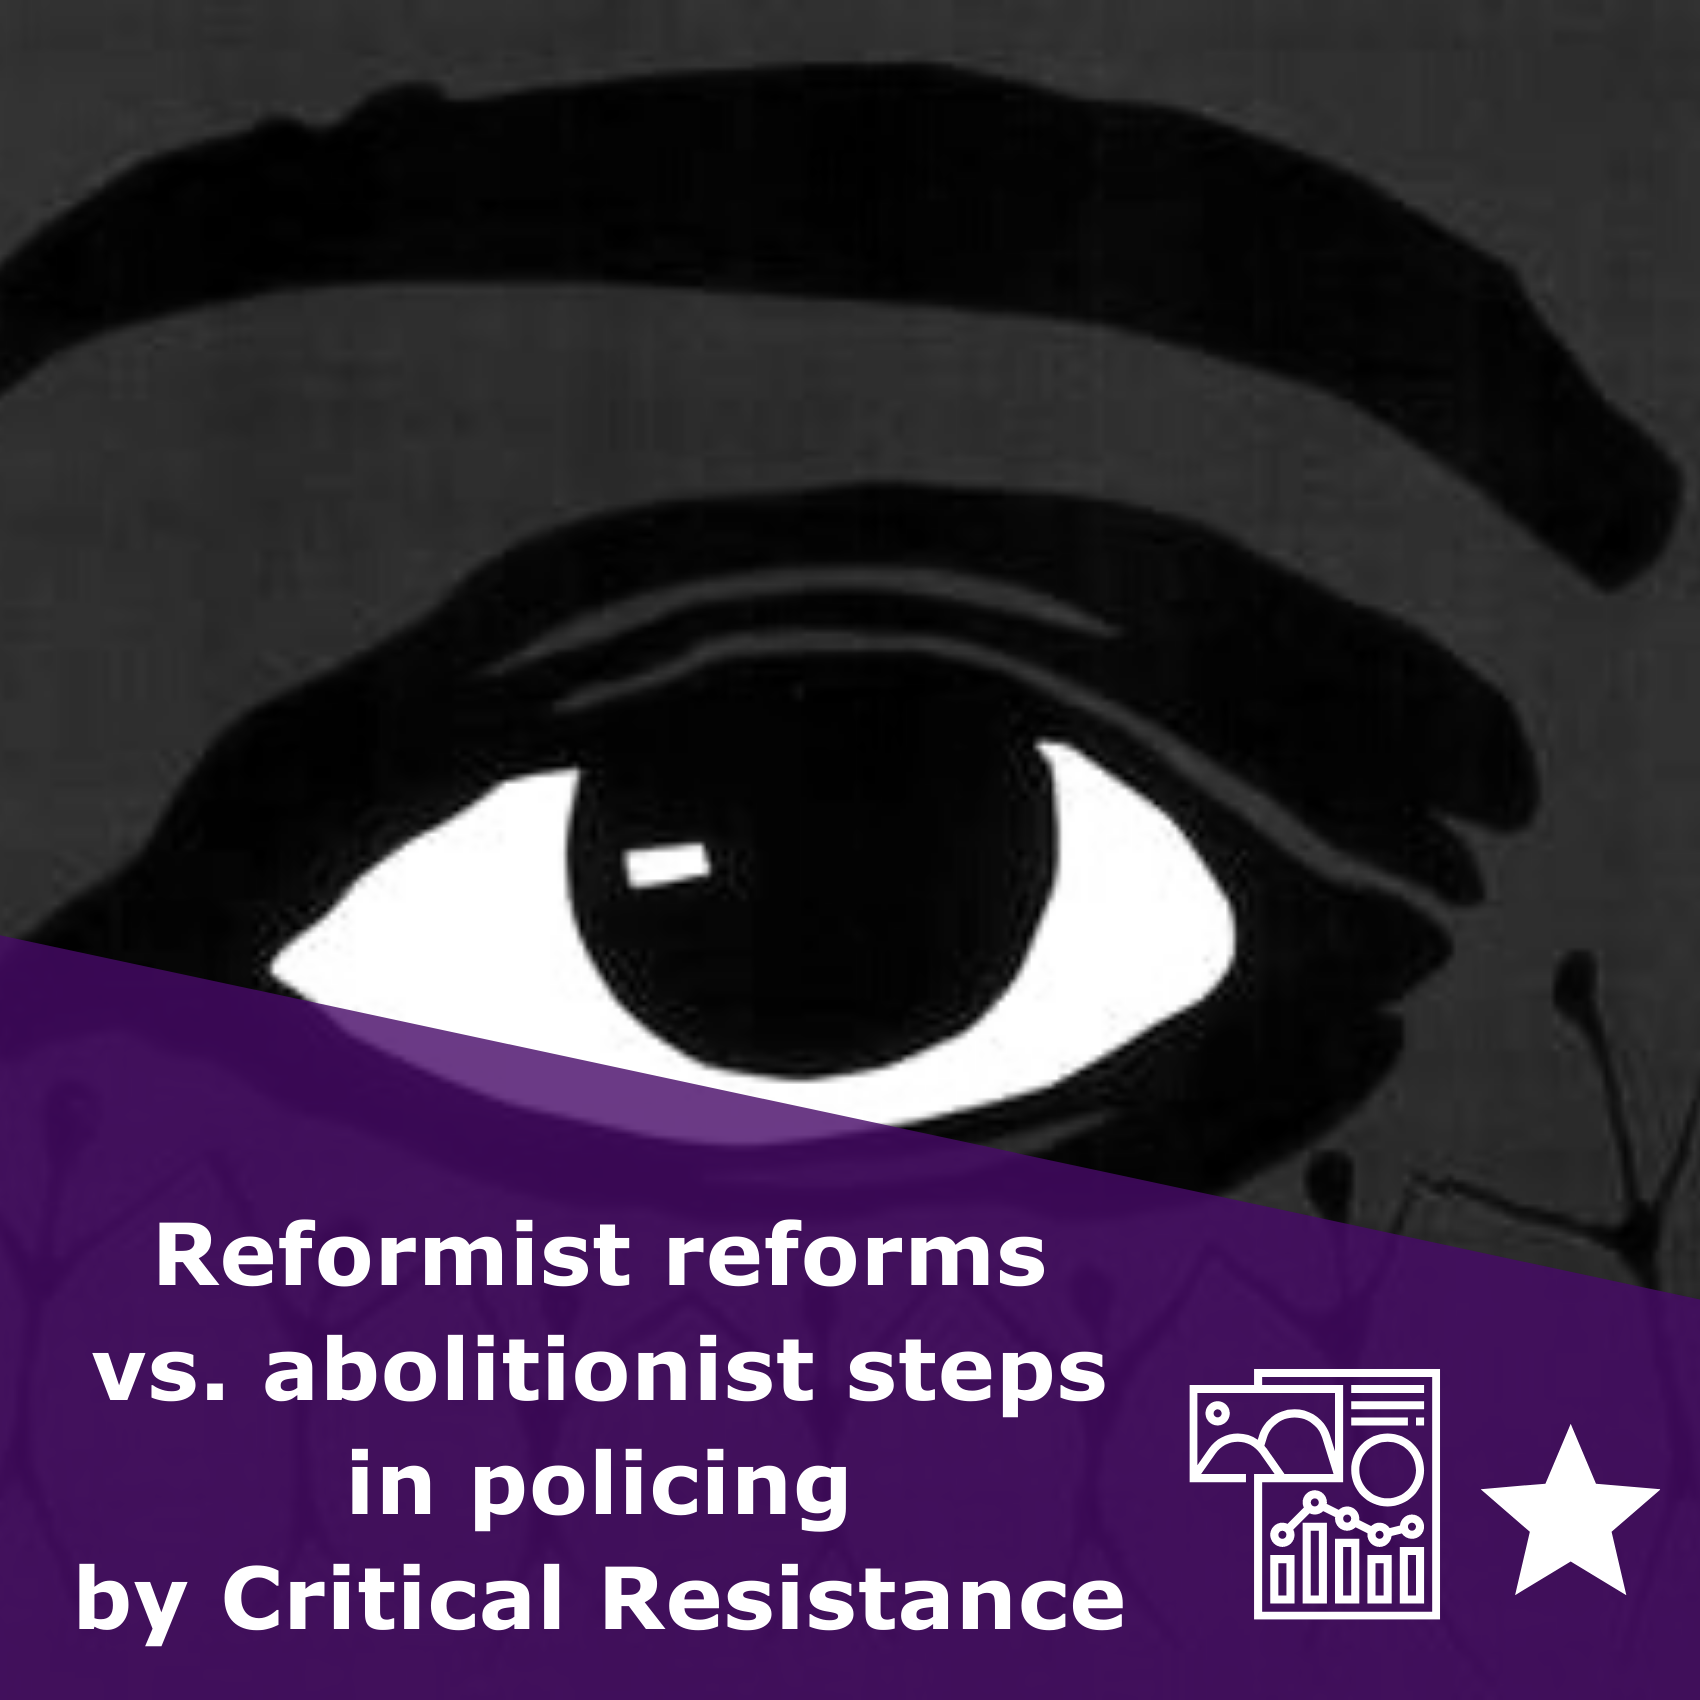 Reformist reforms vs. abolitionist steps in policing by Critical Resistance, infographic rated 1 star